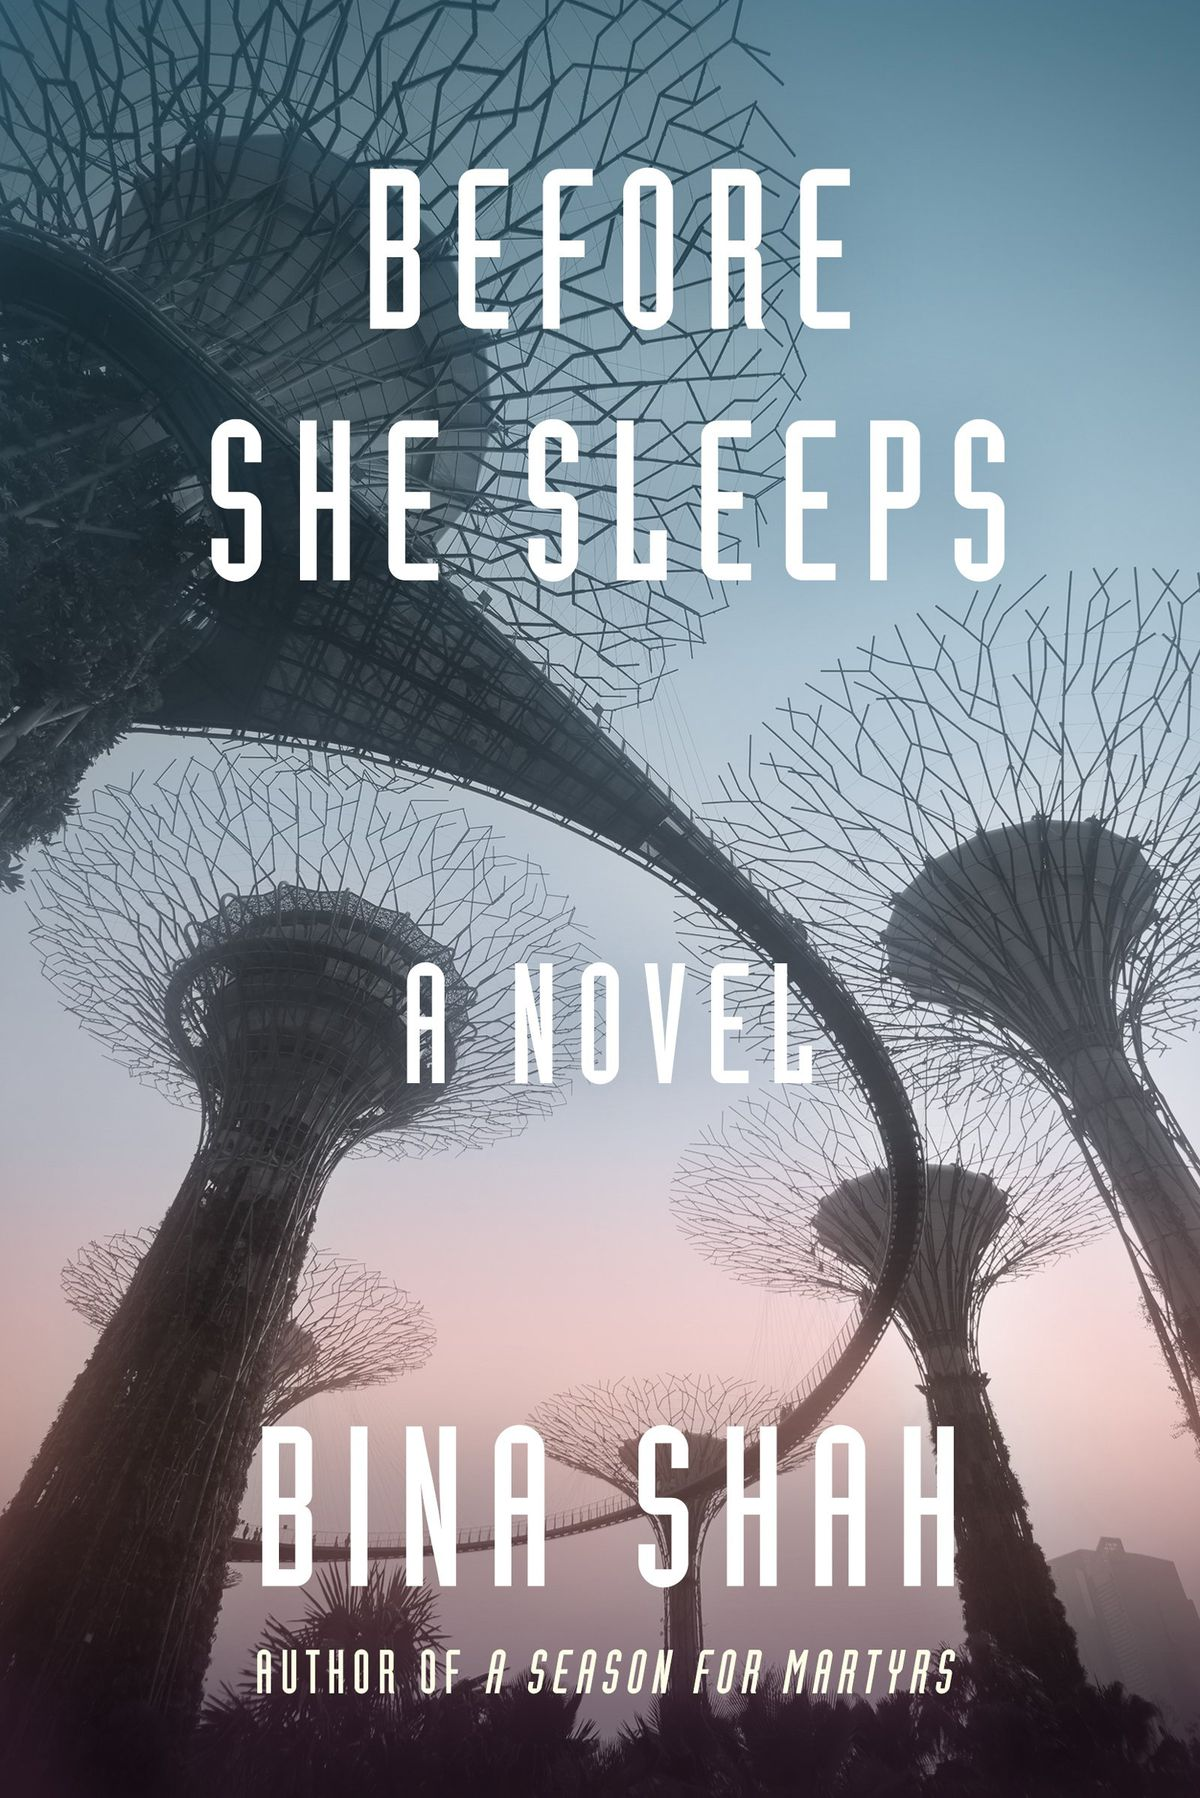 All The Science Fiction And Fantasy Books That You Should Check Out